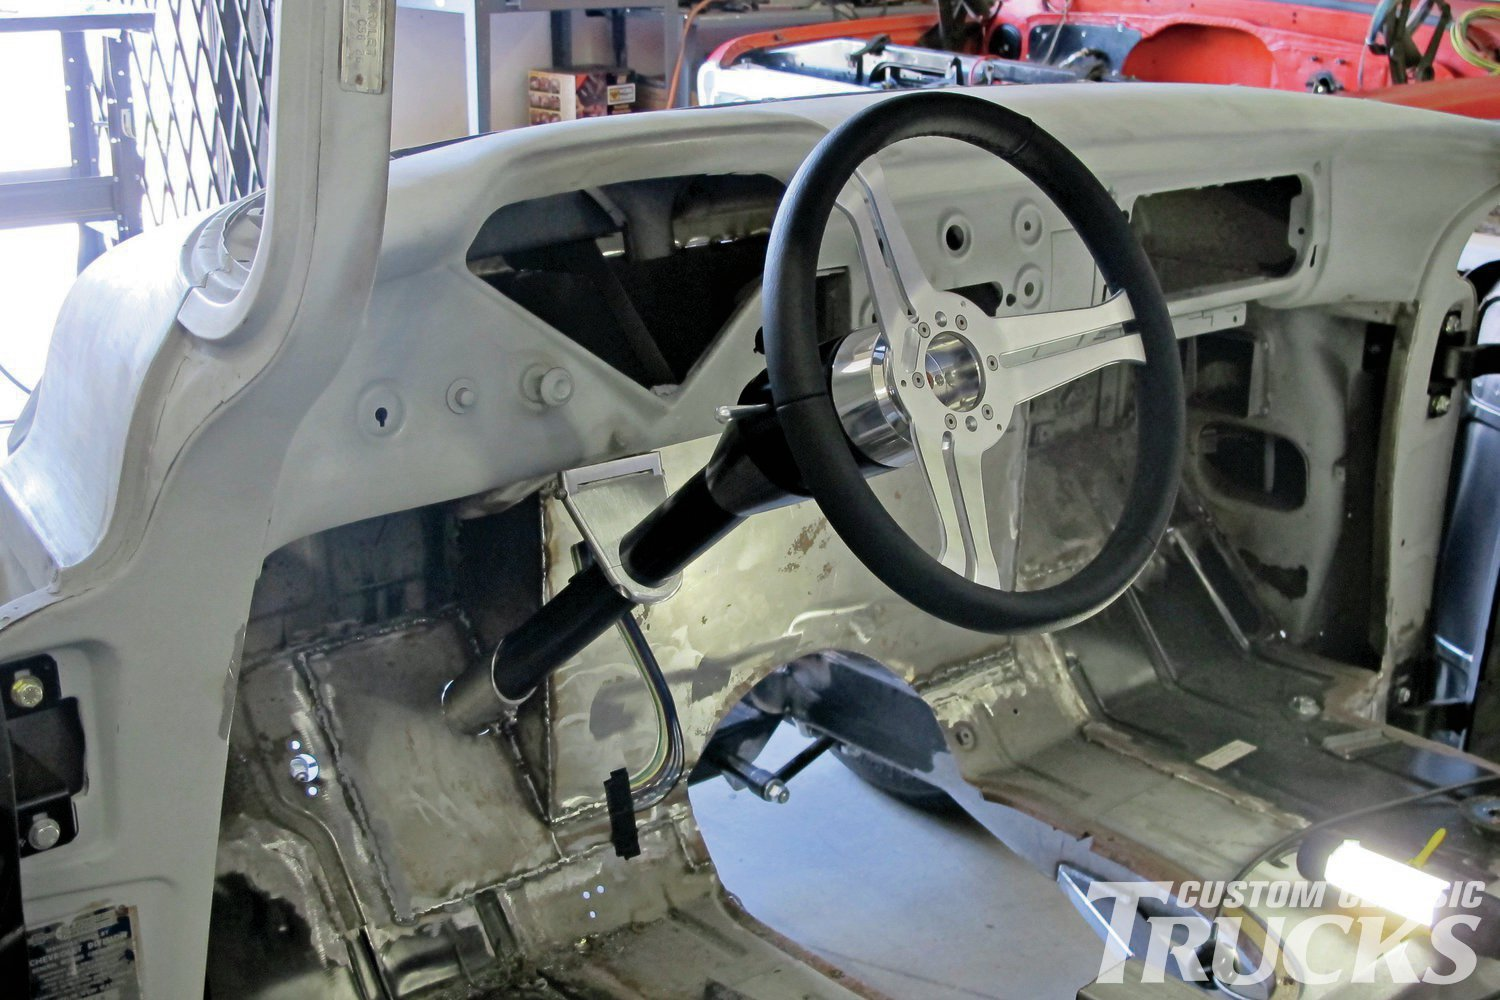 7. To double-check the angle of the column, a test fit was made. Note the swinging dash mount and the black Flaming River Navigator leather-wrapped steering wheel (part number FR20164BK) that mounts with an adapter (part number FR20119BA).